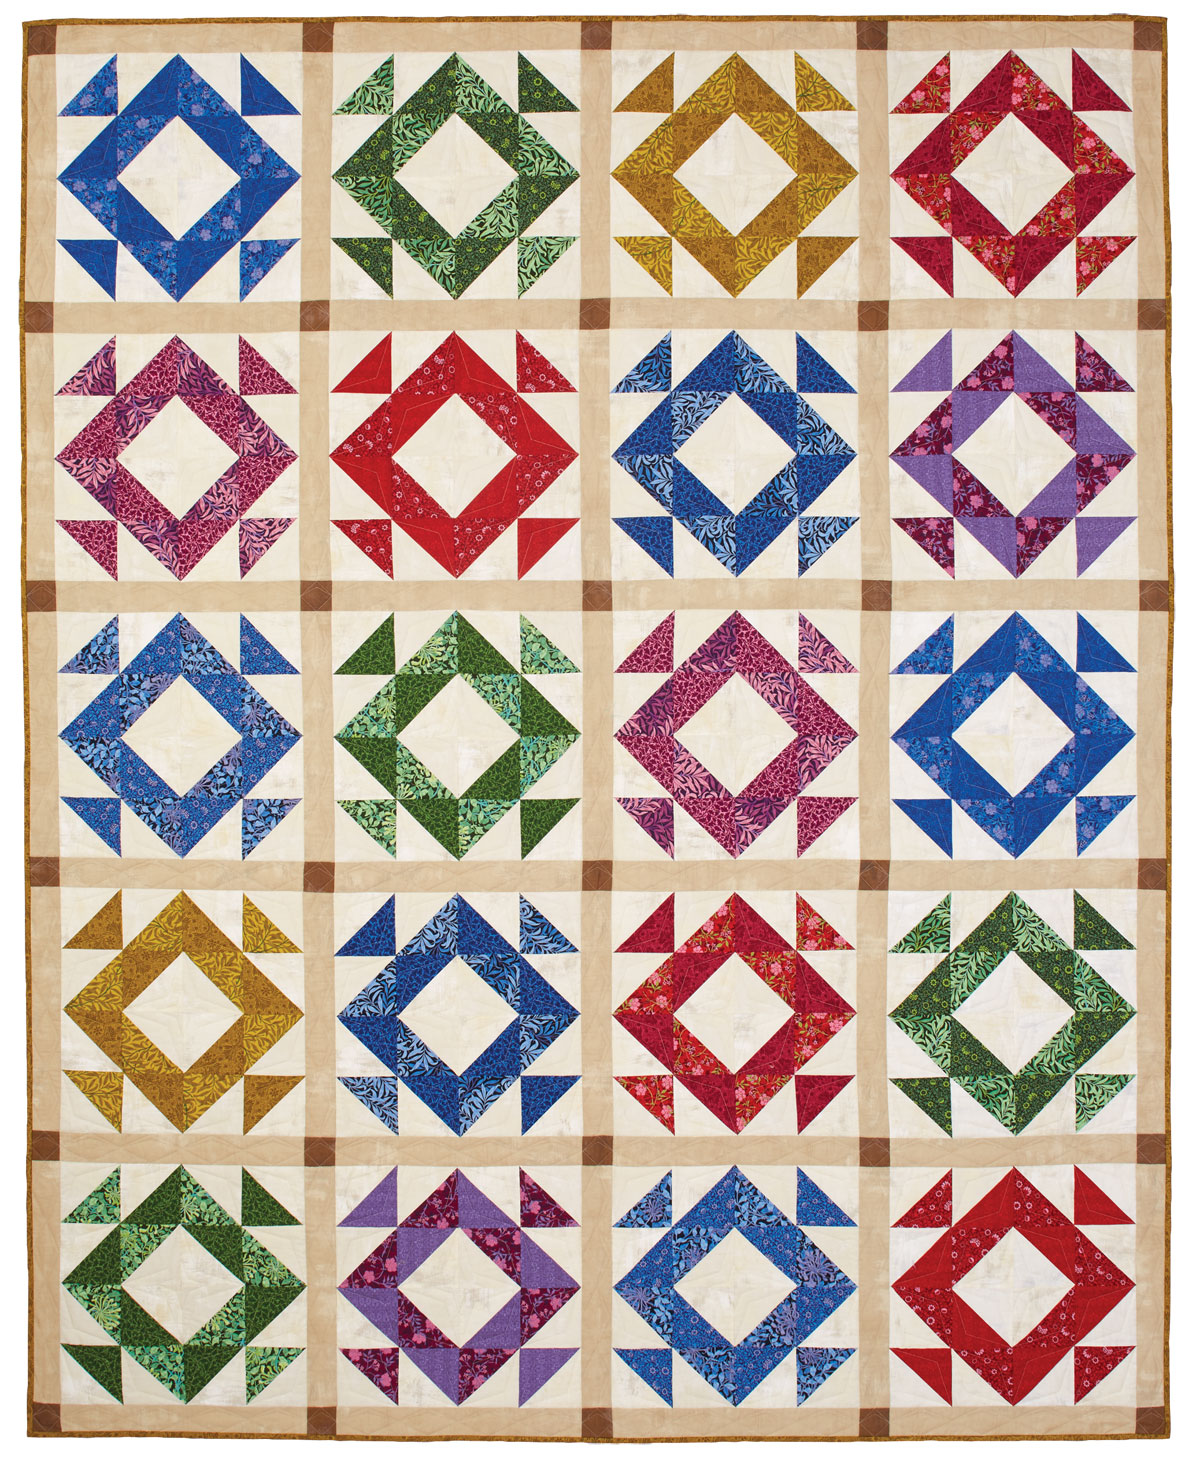 Faceted Quilt - Big Block Quilts